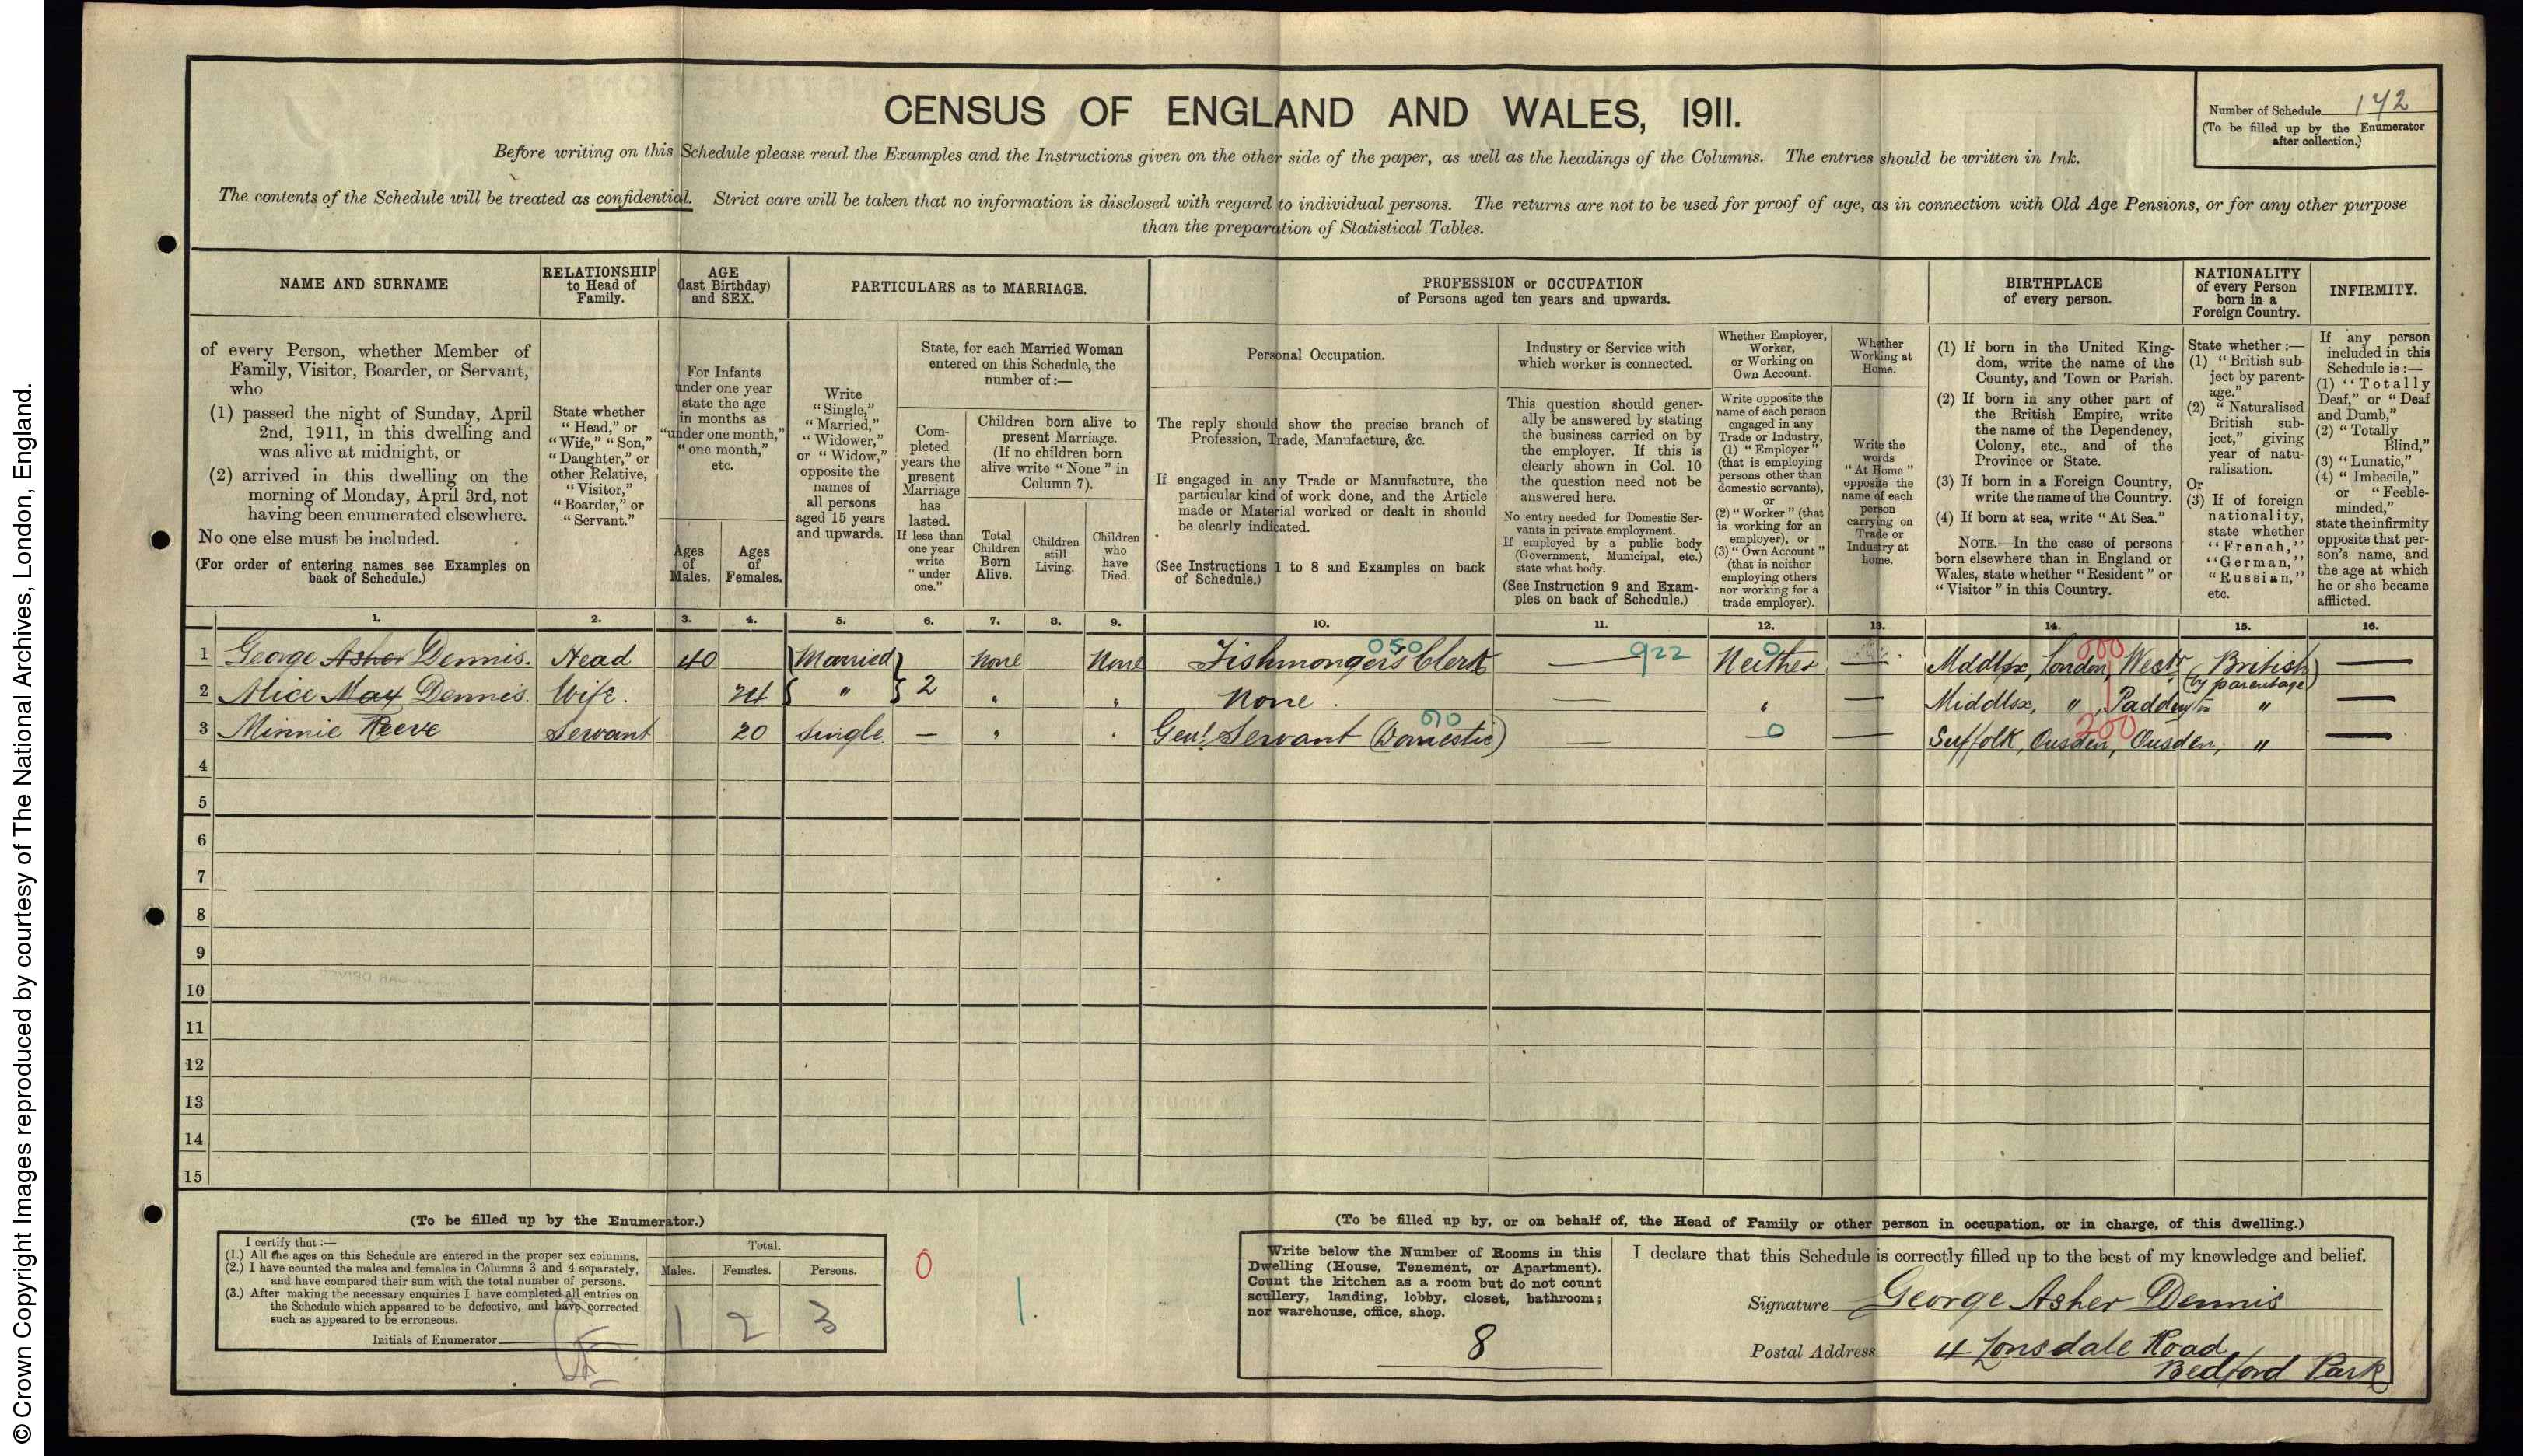 1911Census-4Lonsdale